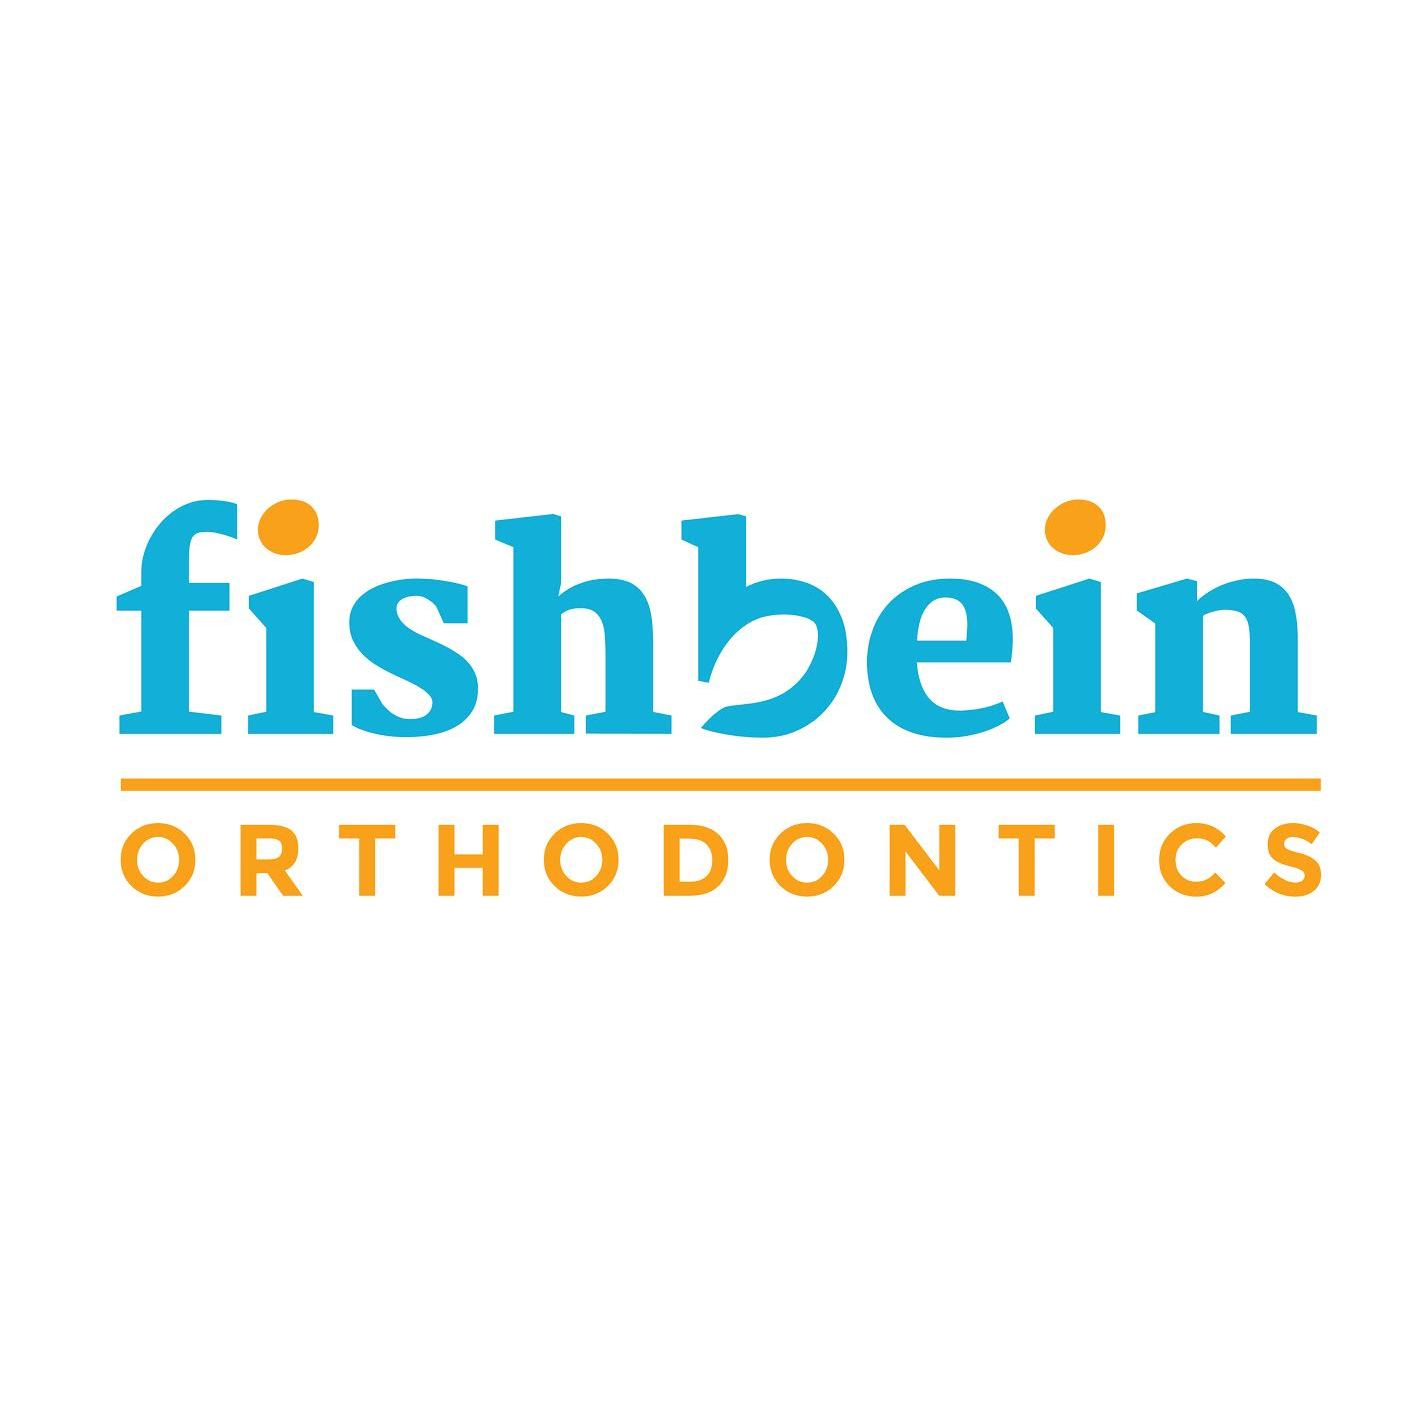 Fishbein Orthodontics